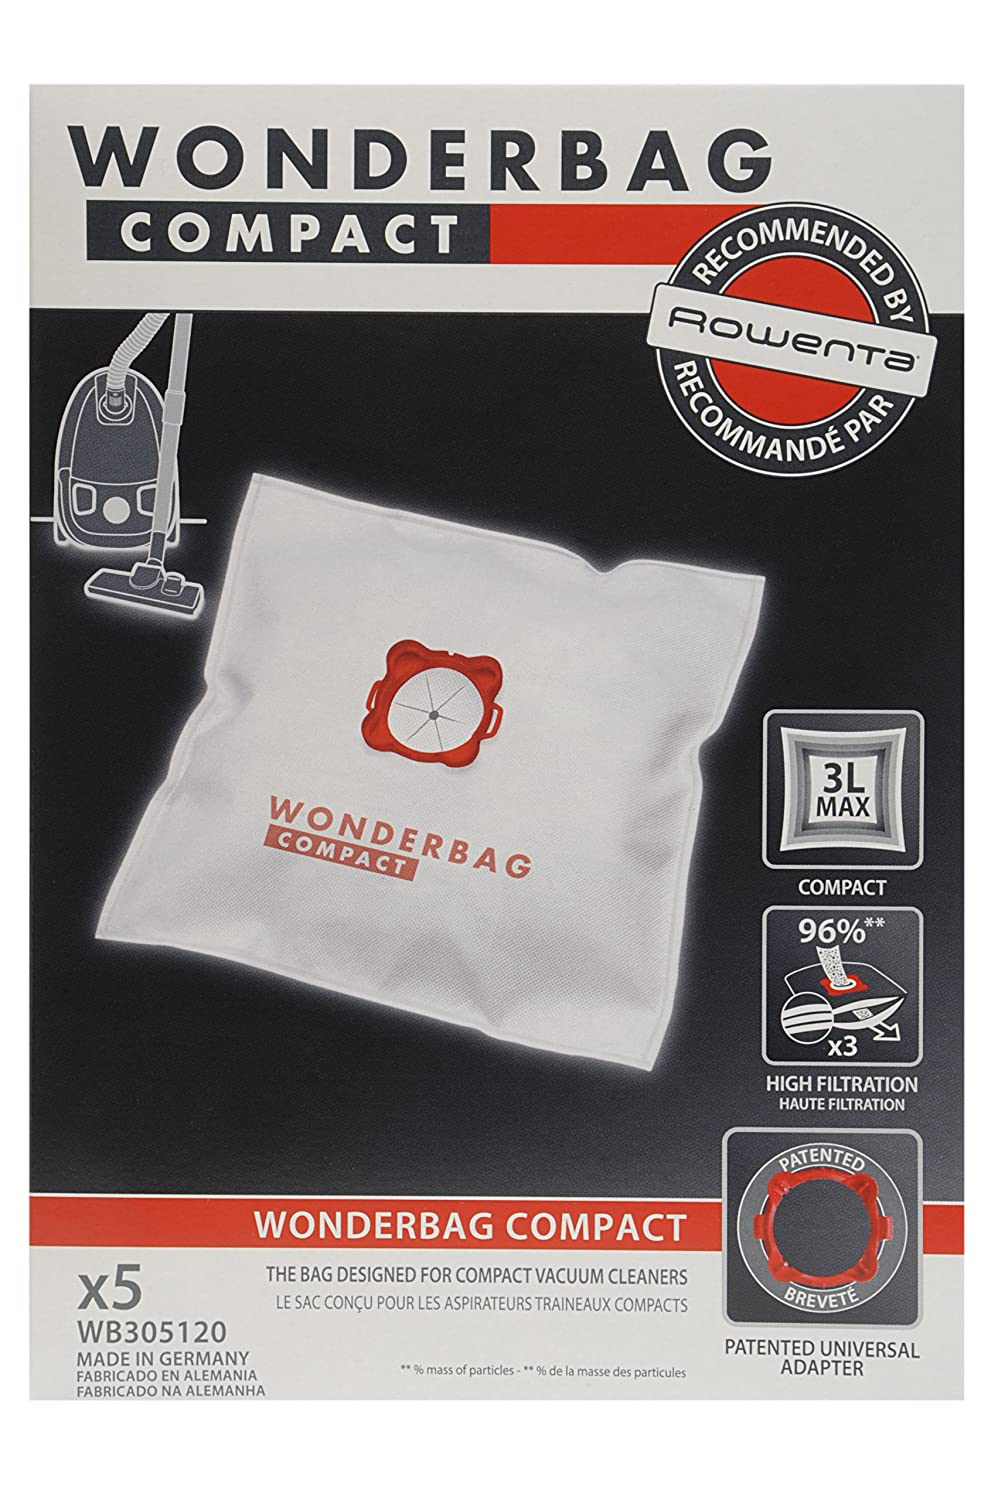 Amazon.com - Wonderbag - WB305120 - Vacuum Cleaner Bag - Wonderbag Compact x 5 -